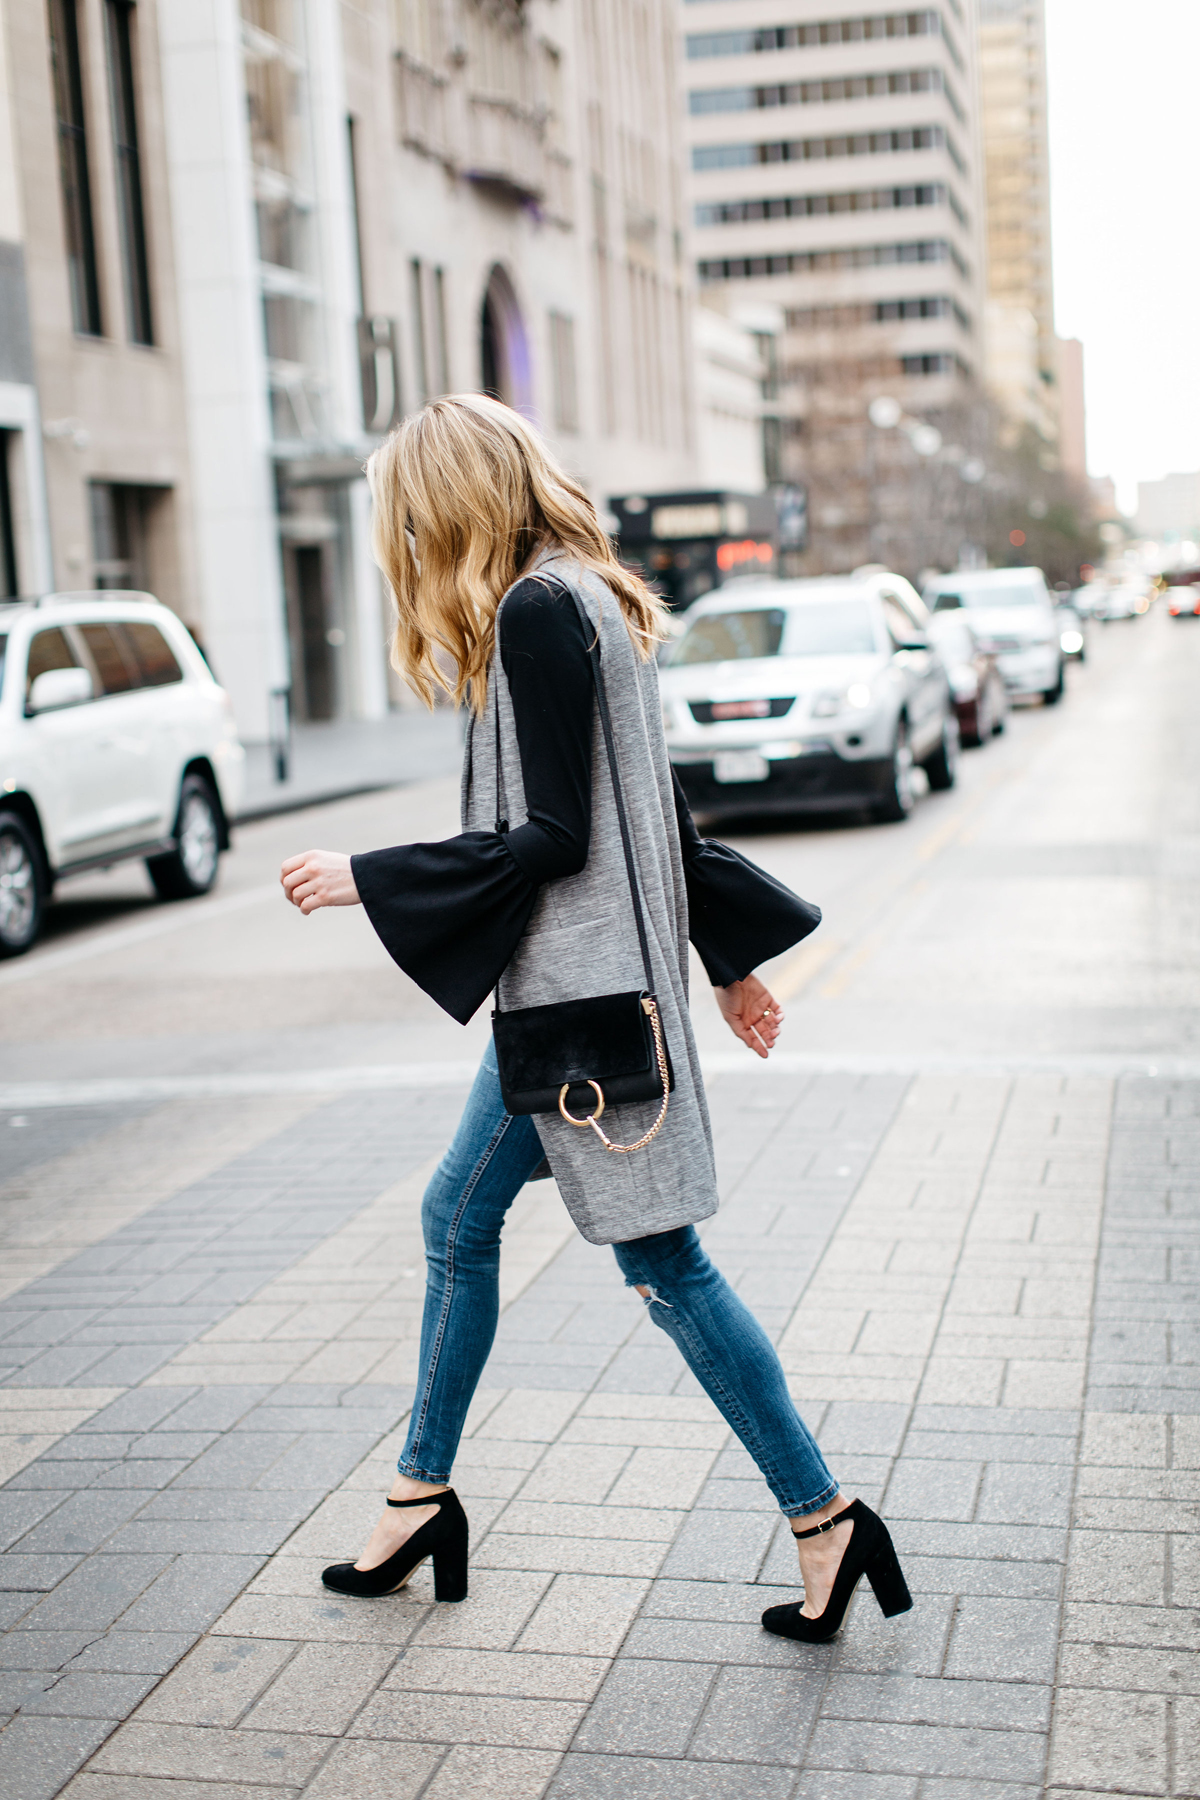 Outfits under $100: 4 cozy